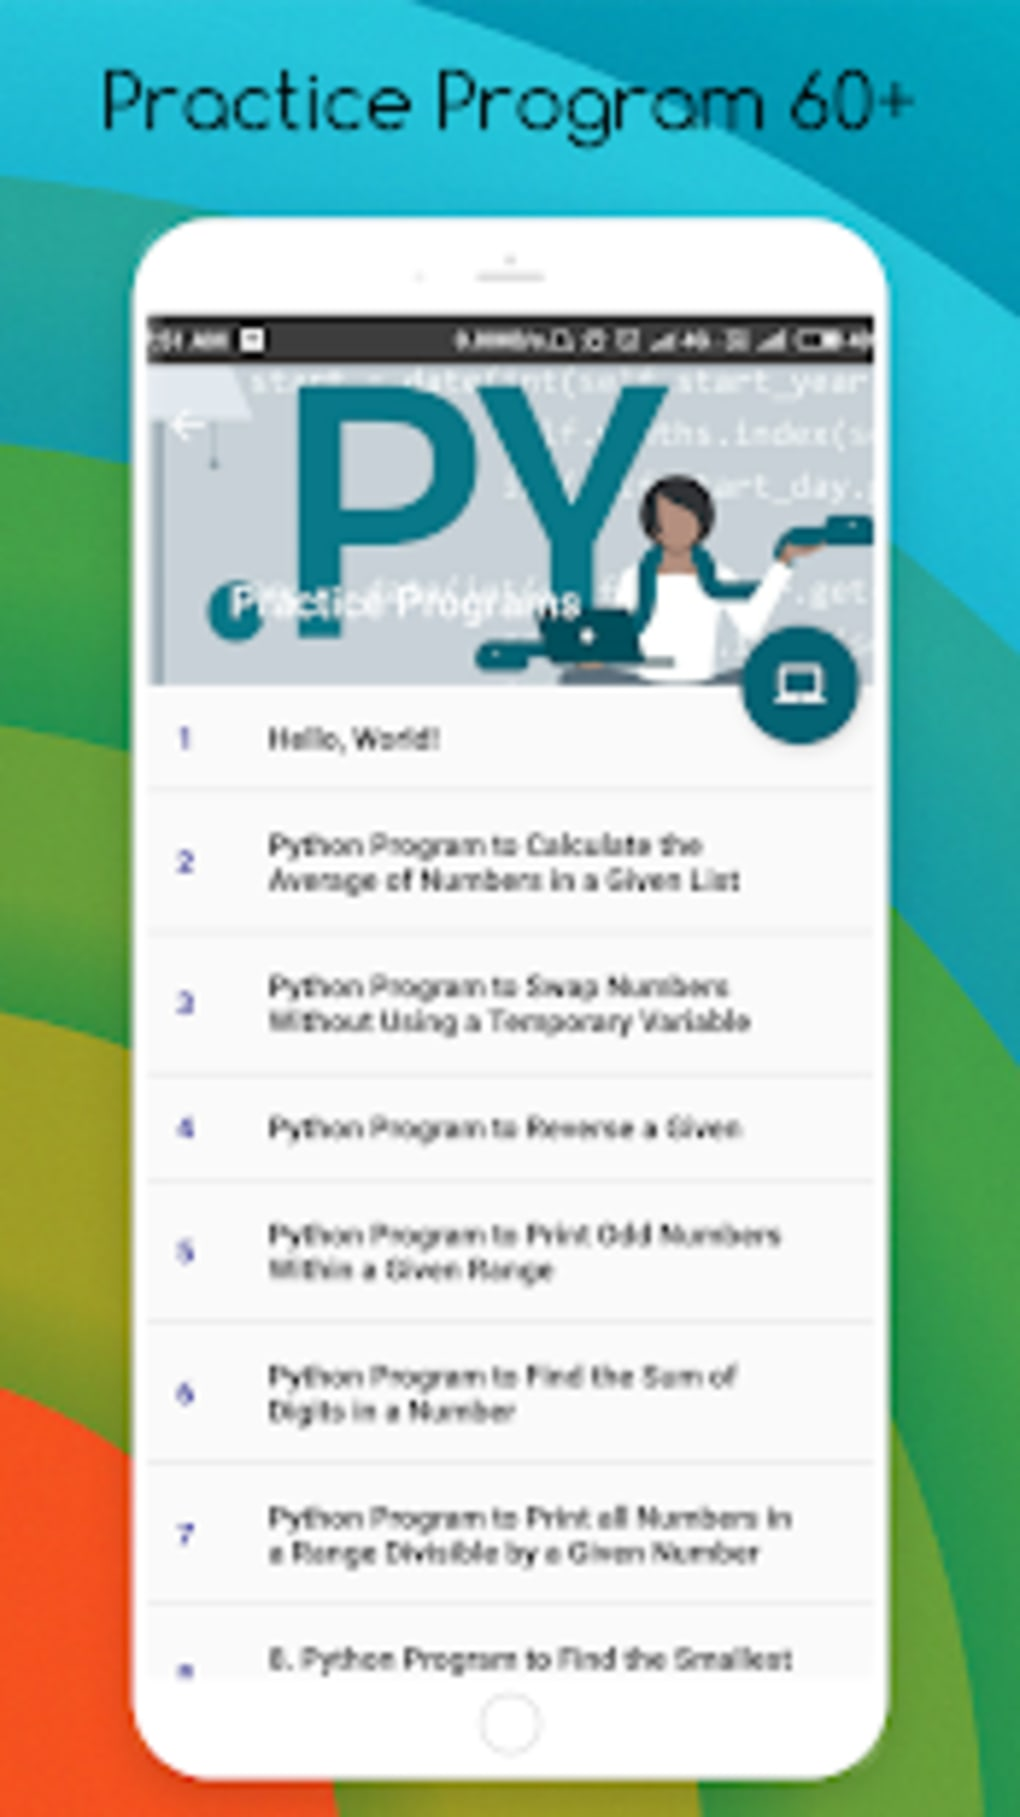 Learn Python Programming Pro for Android - Download